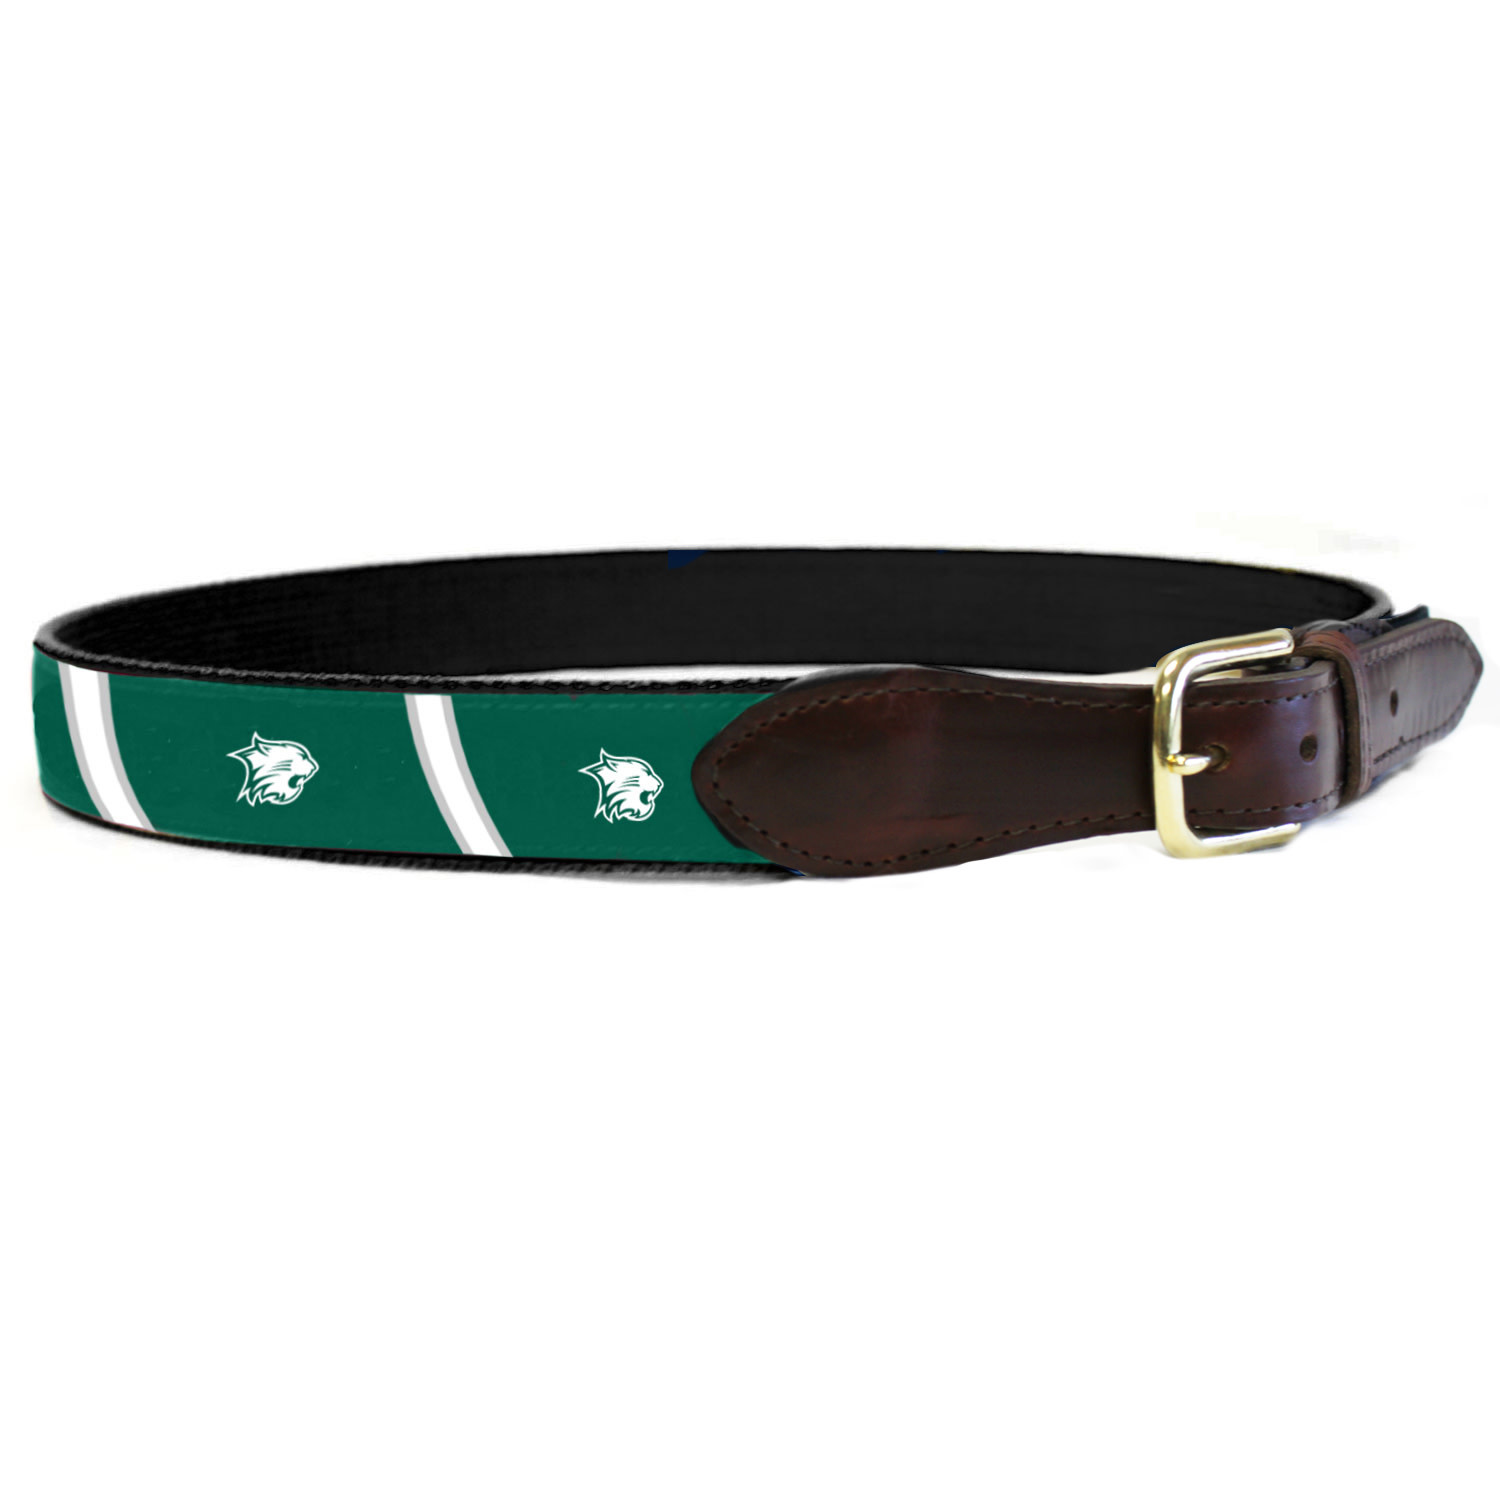 Belt: Leather/Canvas Youth